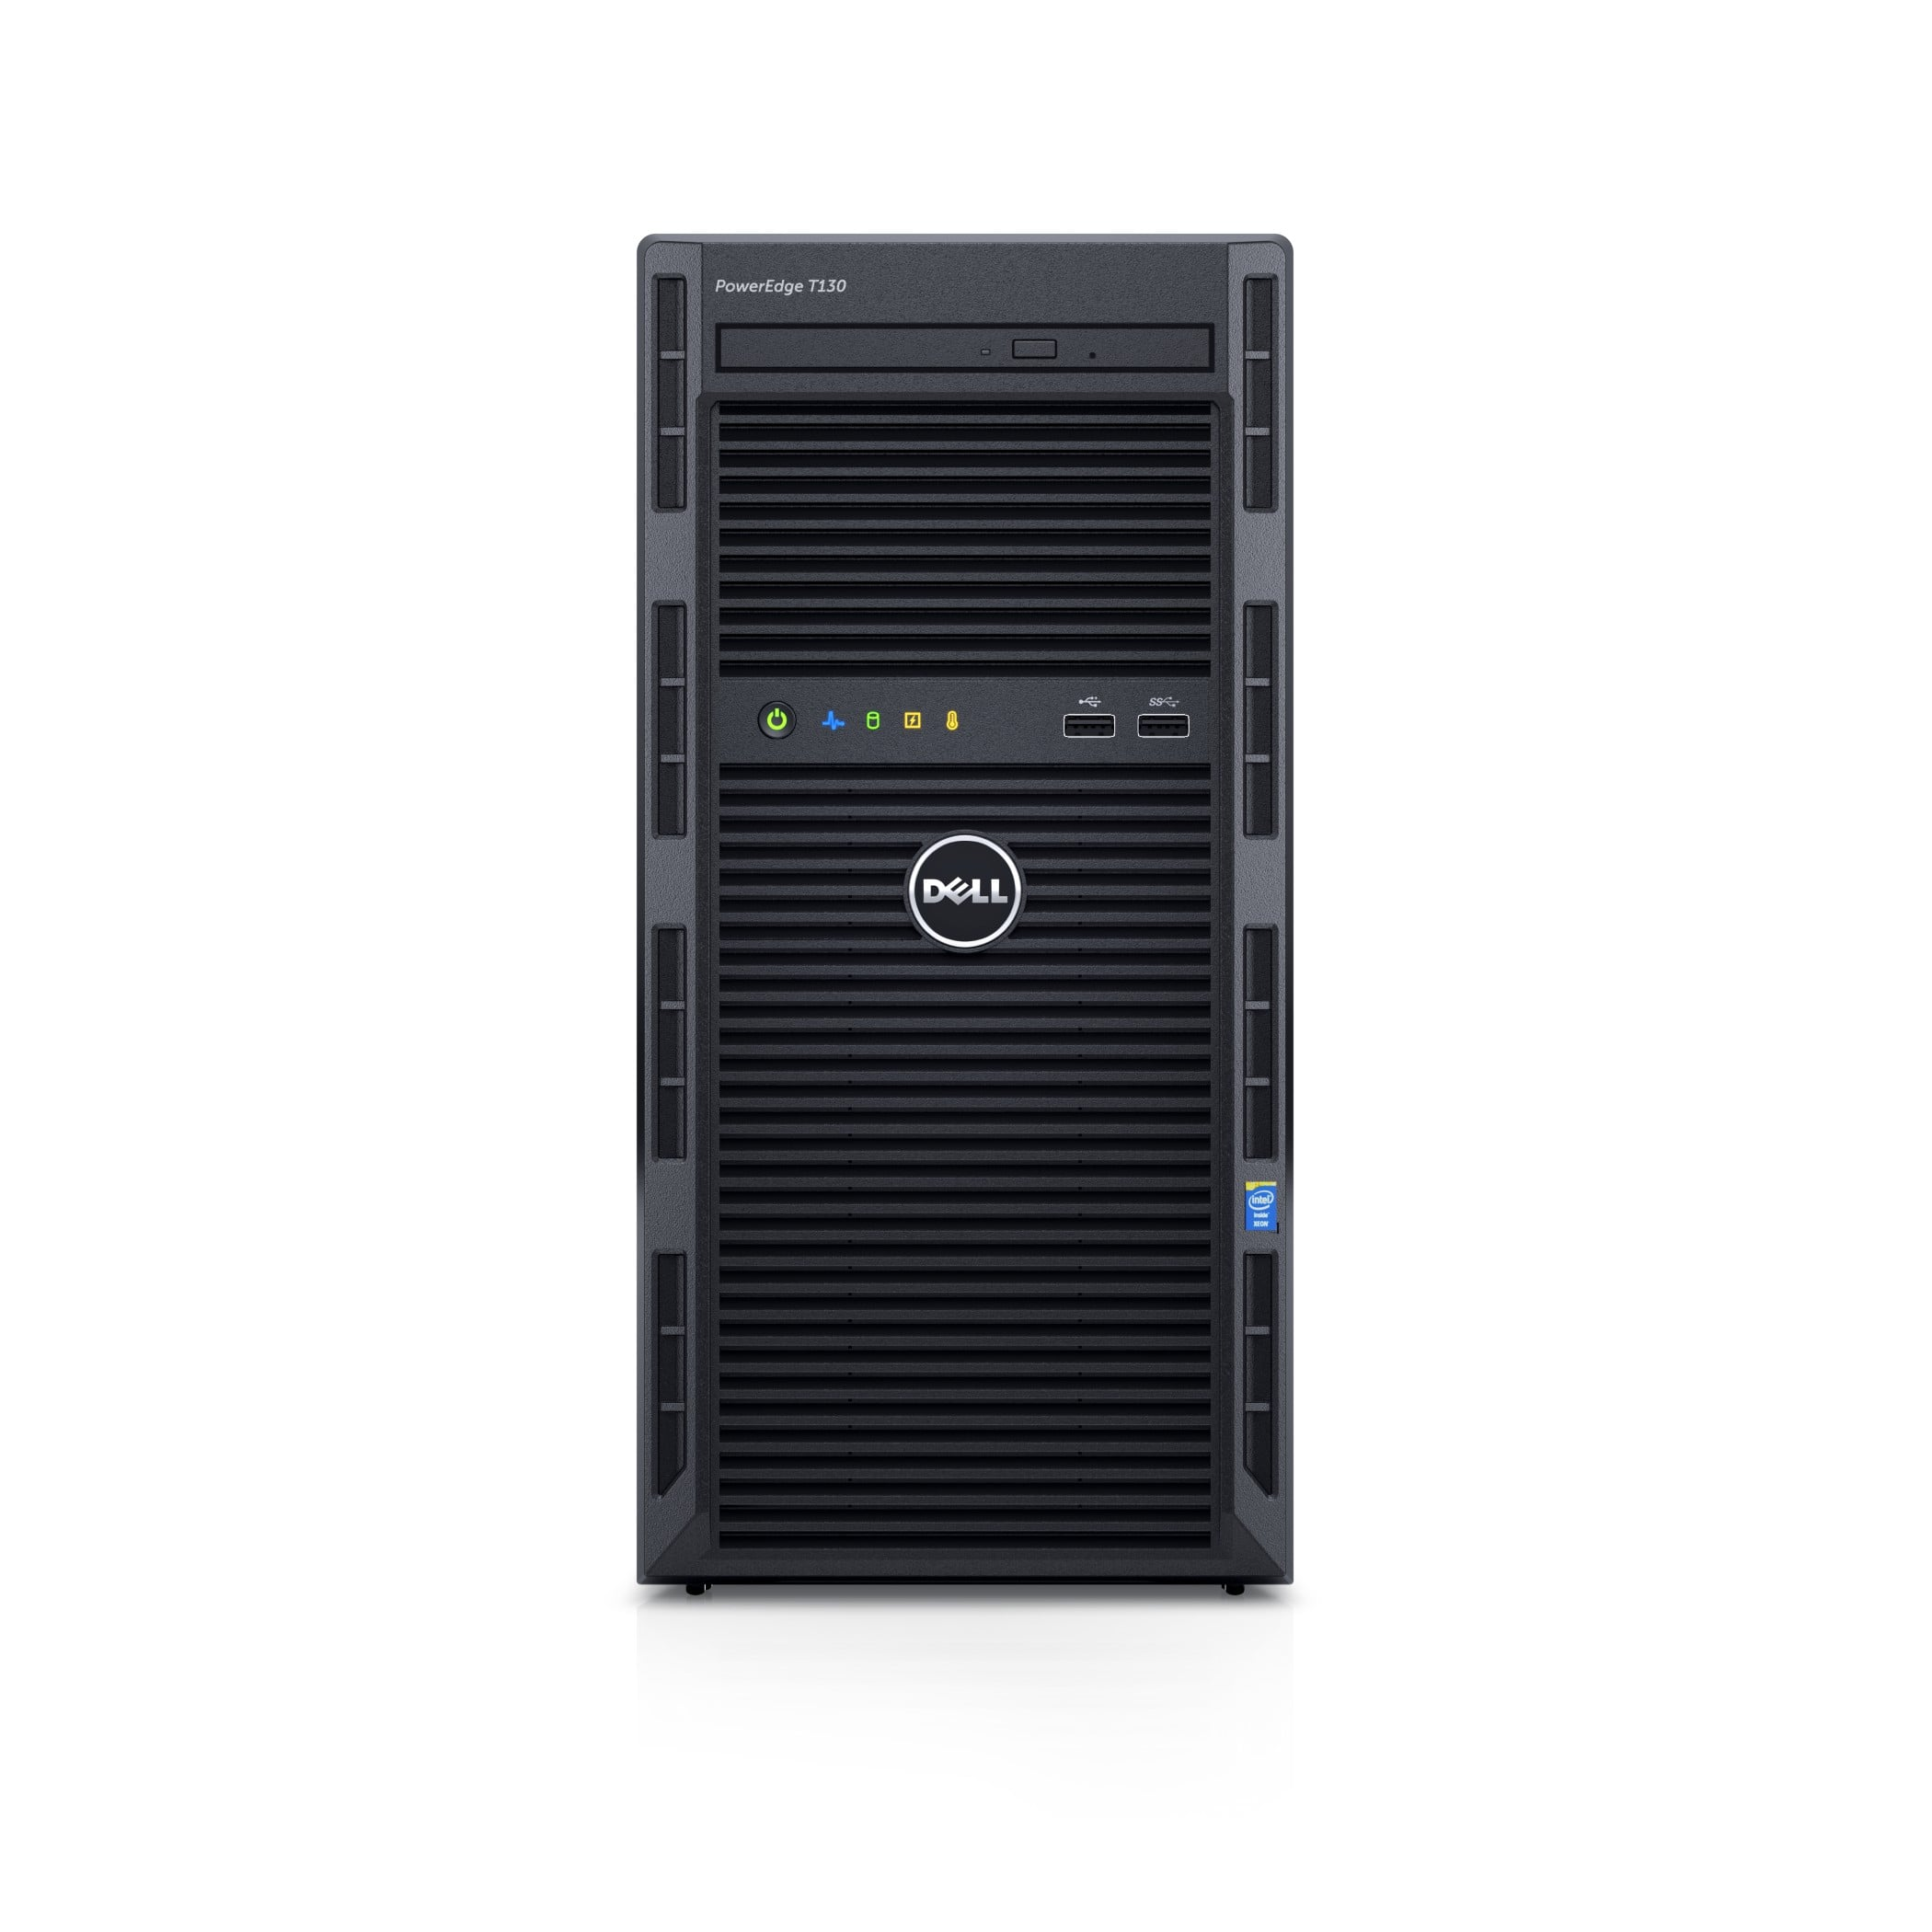 Dell PowerEdge T130 - 349$+tax - Intel Quad Core Xeon E3-1225 v5 3.3GHz Processor, 4GB RAM, 500GB, DVD +/-RW Drive